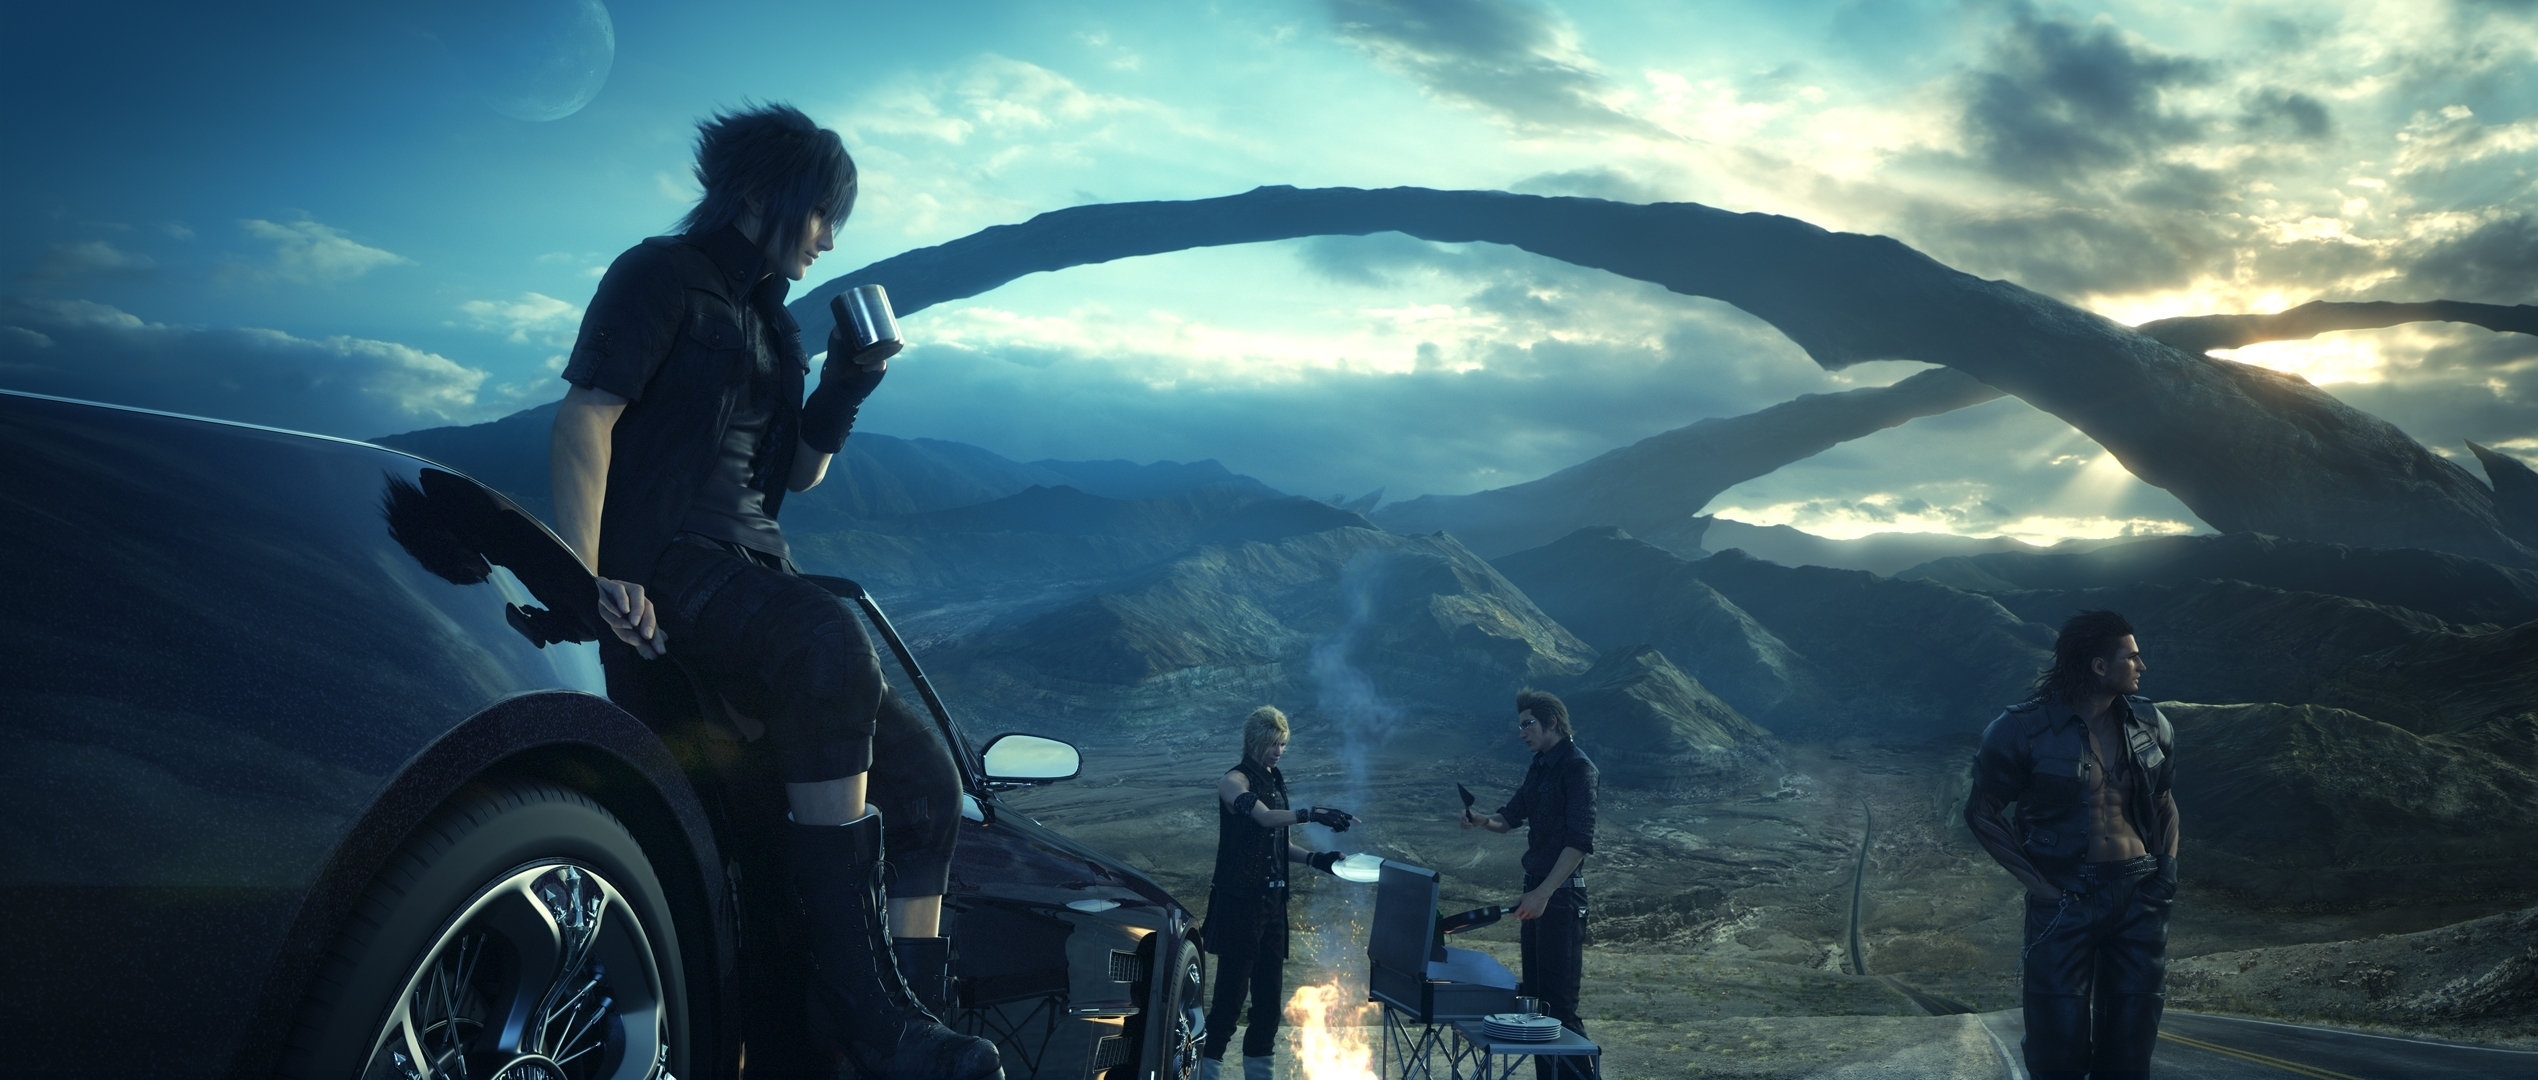 10 Most Popular Final Fantasy 15 Wall Paper FULL HD 1080p For PC Desktop